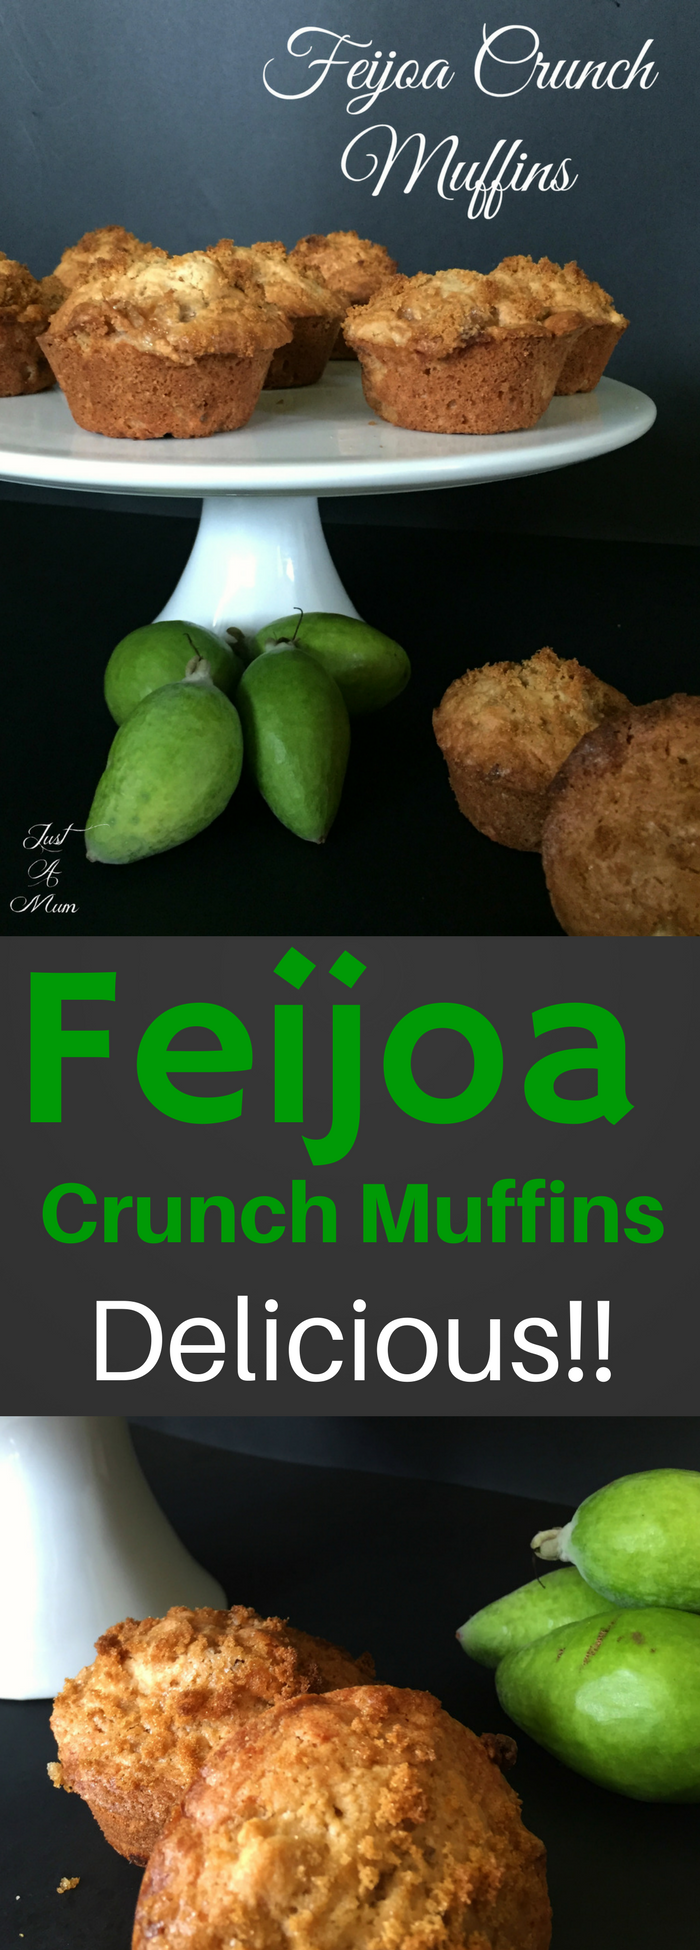 Just A Mum's Feijoa Crunch Muffins